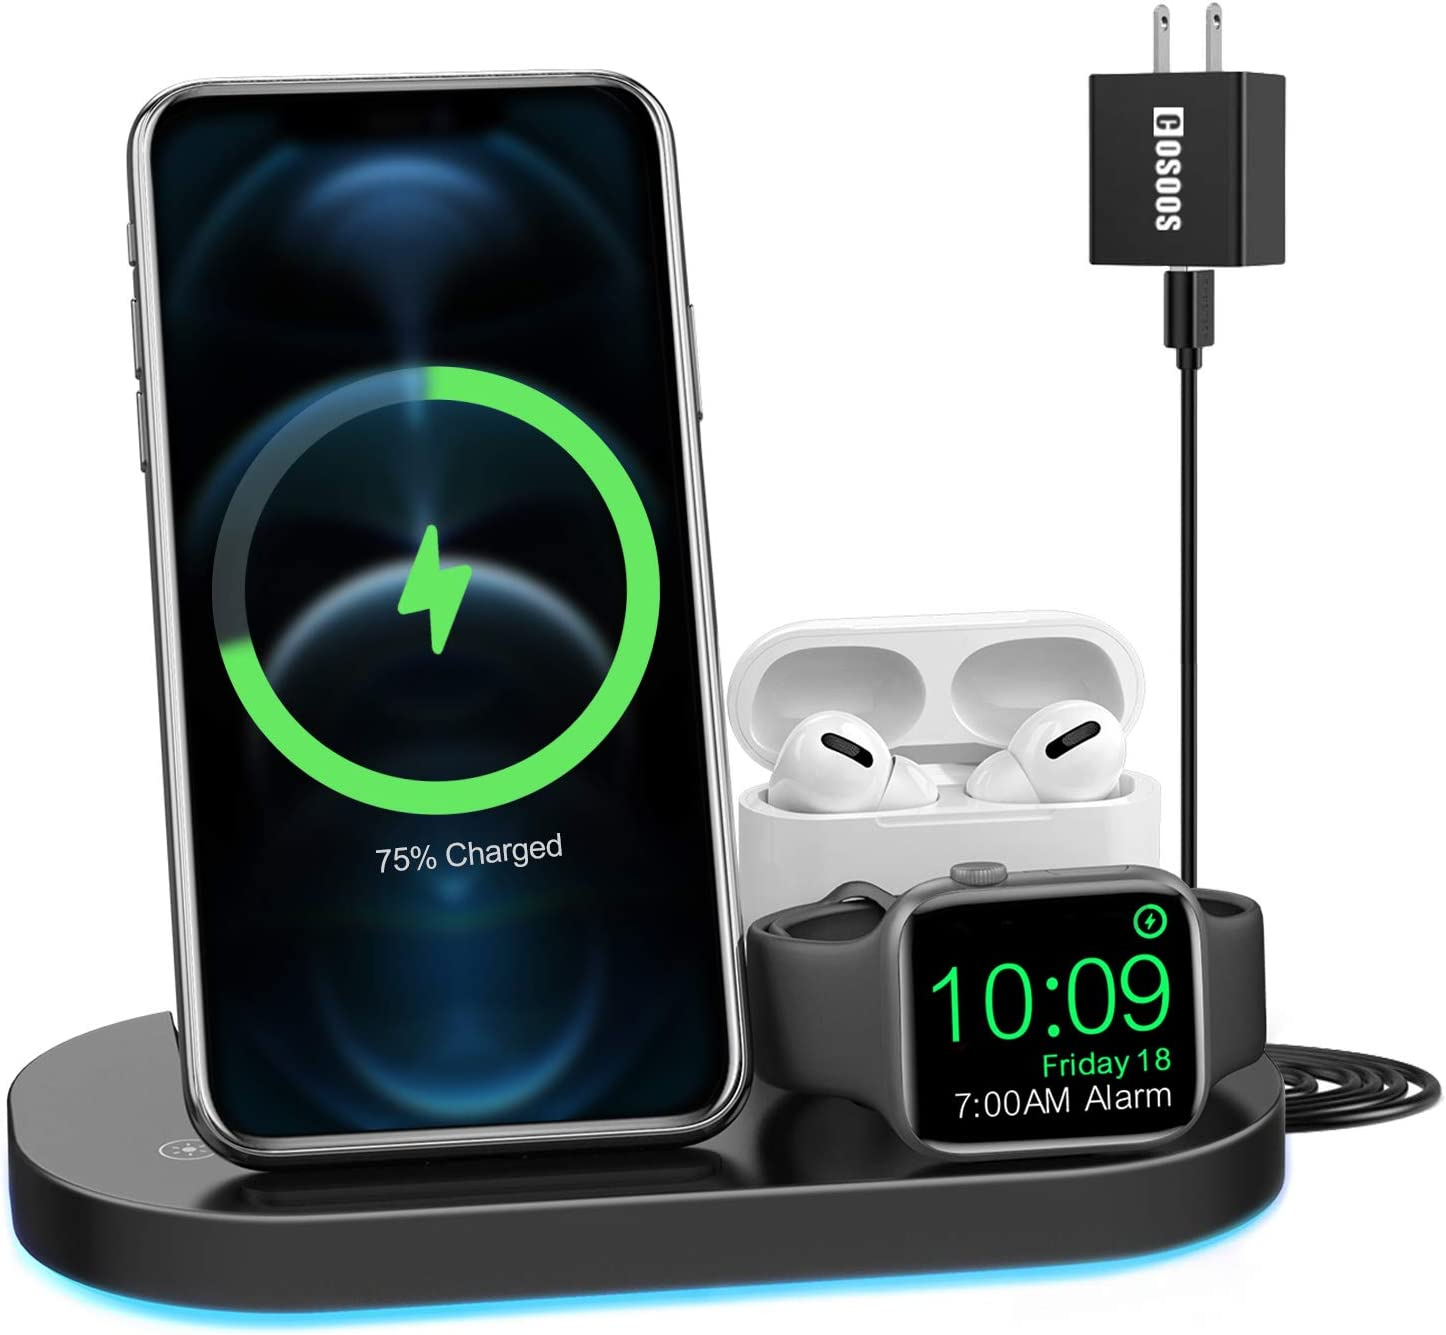 Wireless Charging Station, COSOOS Qi-Certified Fast Wireless Charger Stand Compatible with AirPods/AirPods Pro, iPhone 12/11 Series/XS Max/XS/XR/X/8/8 Plus(Adapter Included)